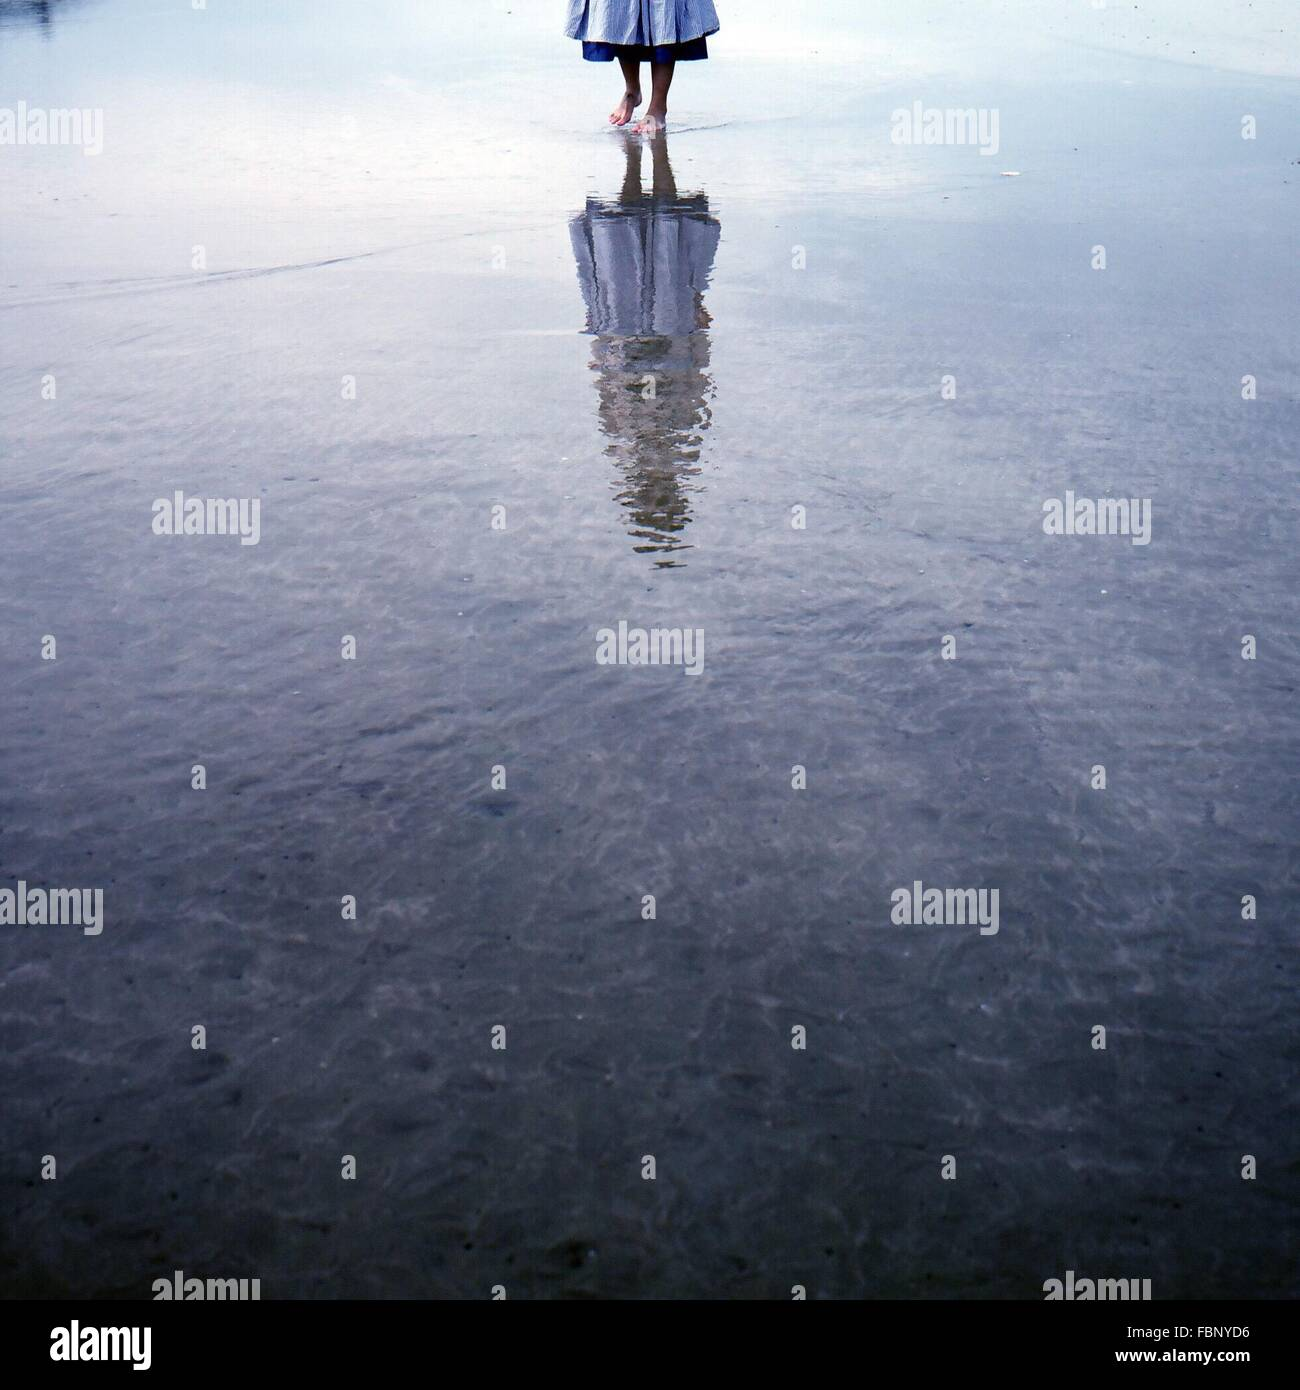 Low Section Of Woman Walking On Water With Reflection - Stock Image